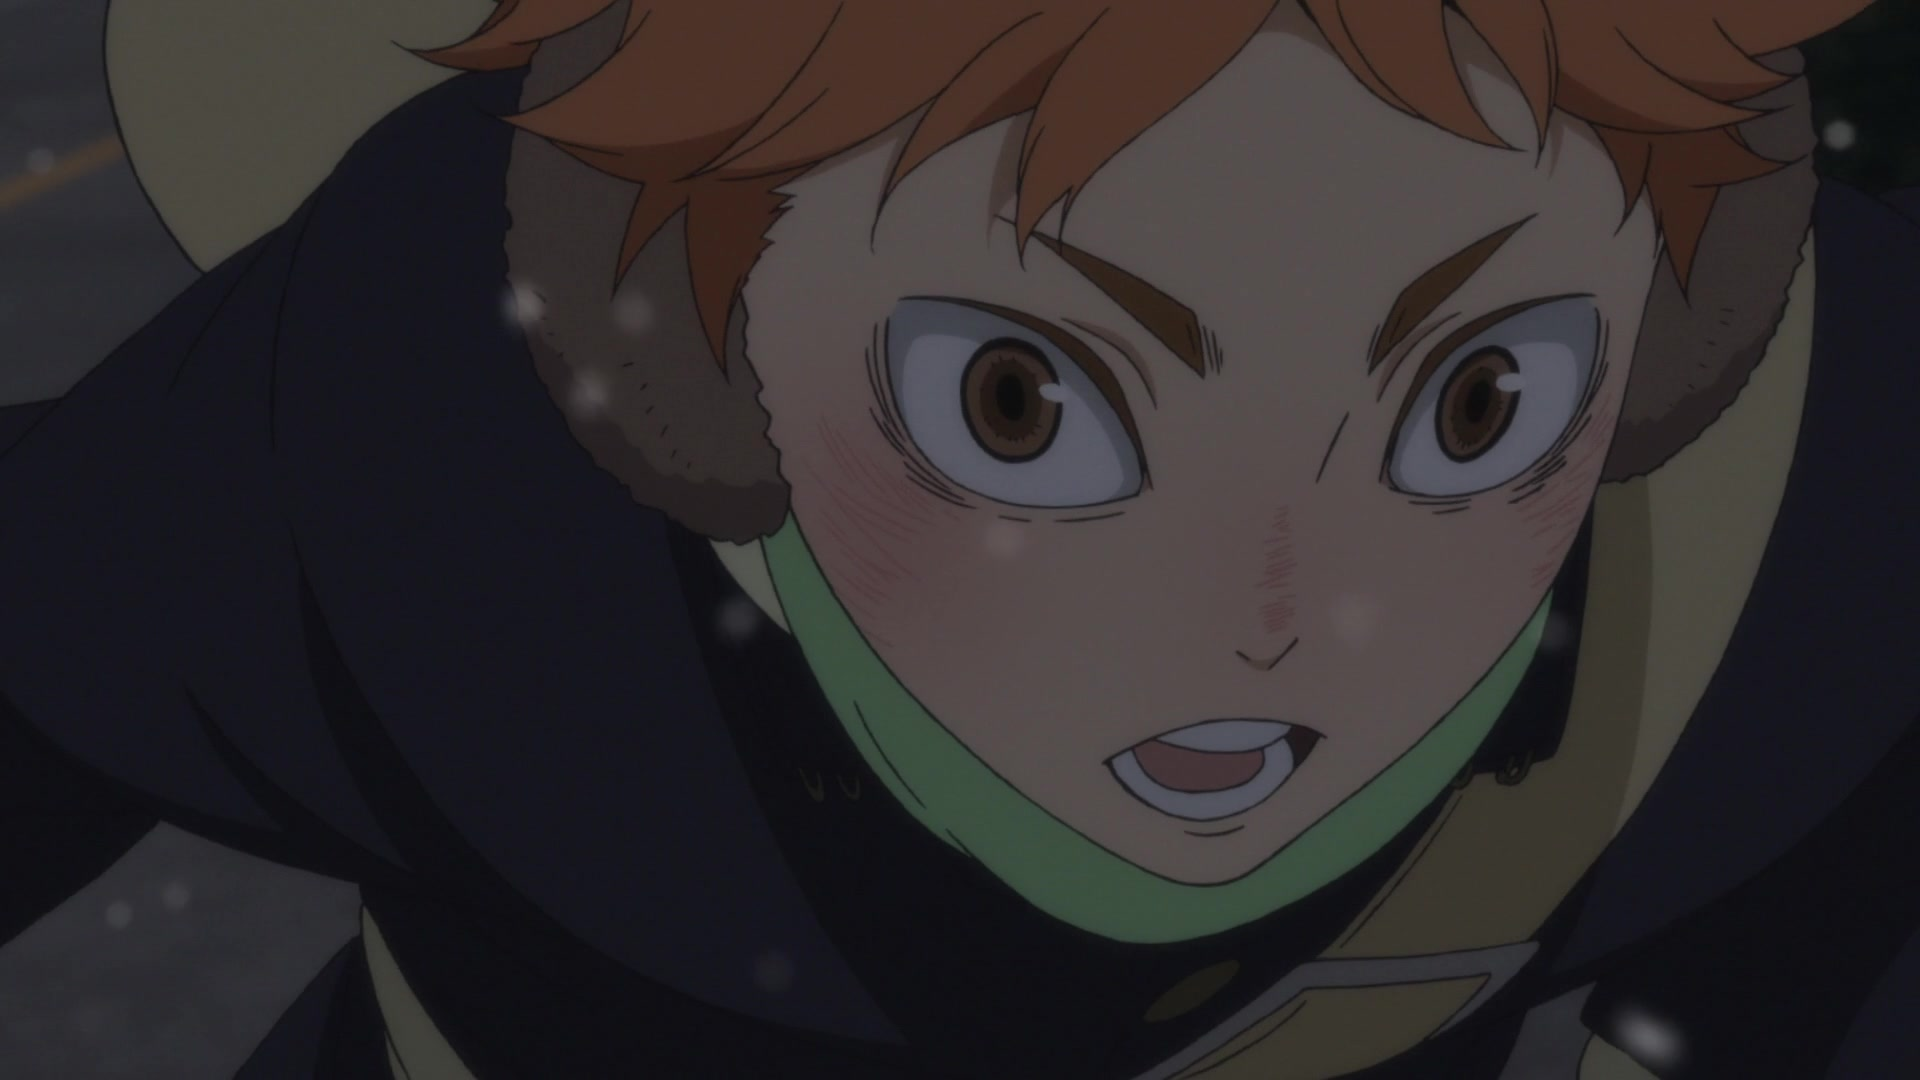 Hinata biking from Haikyuu!! Season 4 anime episode 1